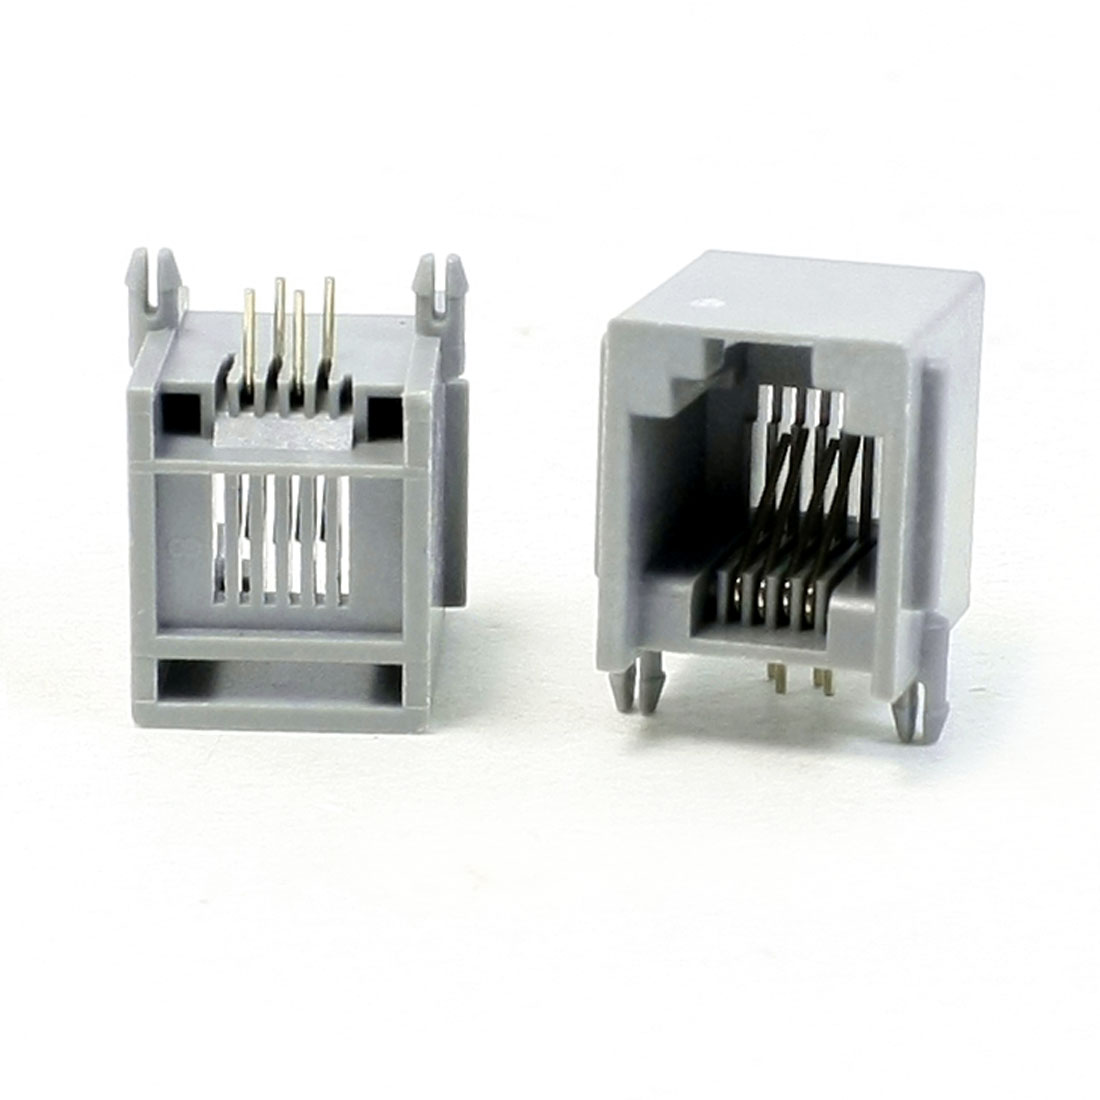 Right Angle Pin RJ11 RJ13 RJ14 6P4C Modular Network Jack 15mm Length 20Pcs